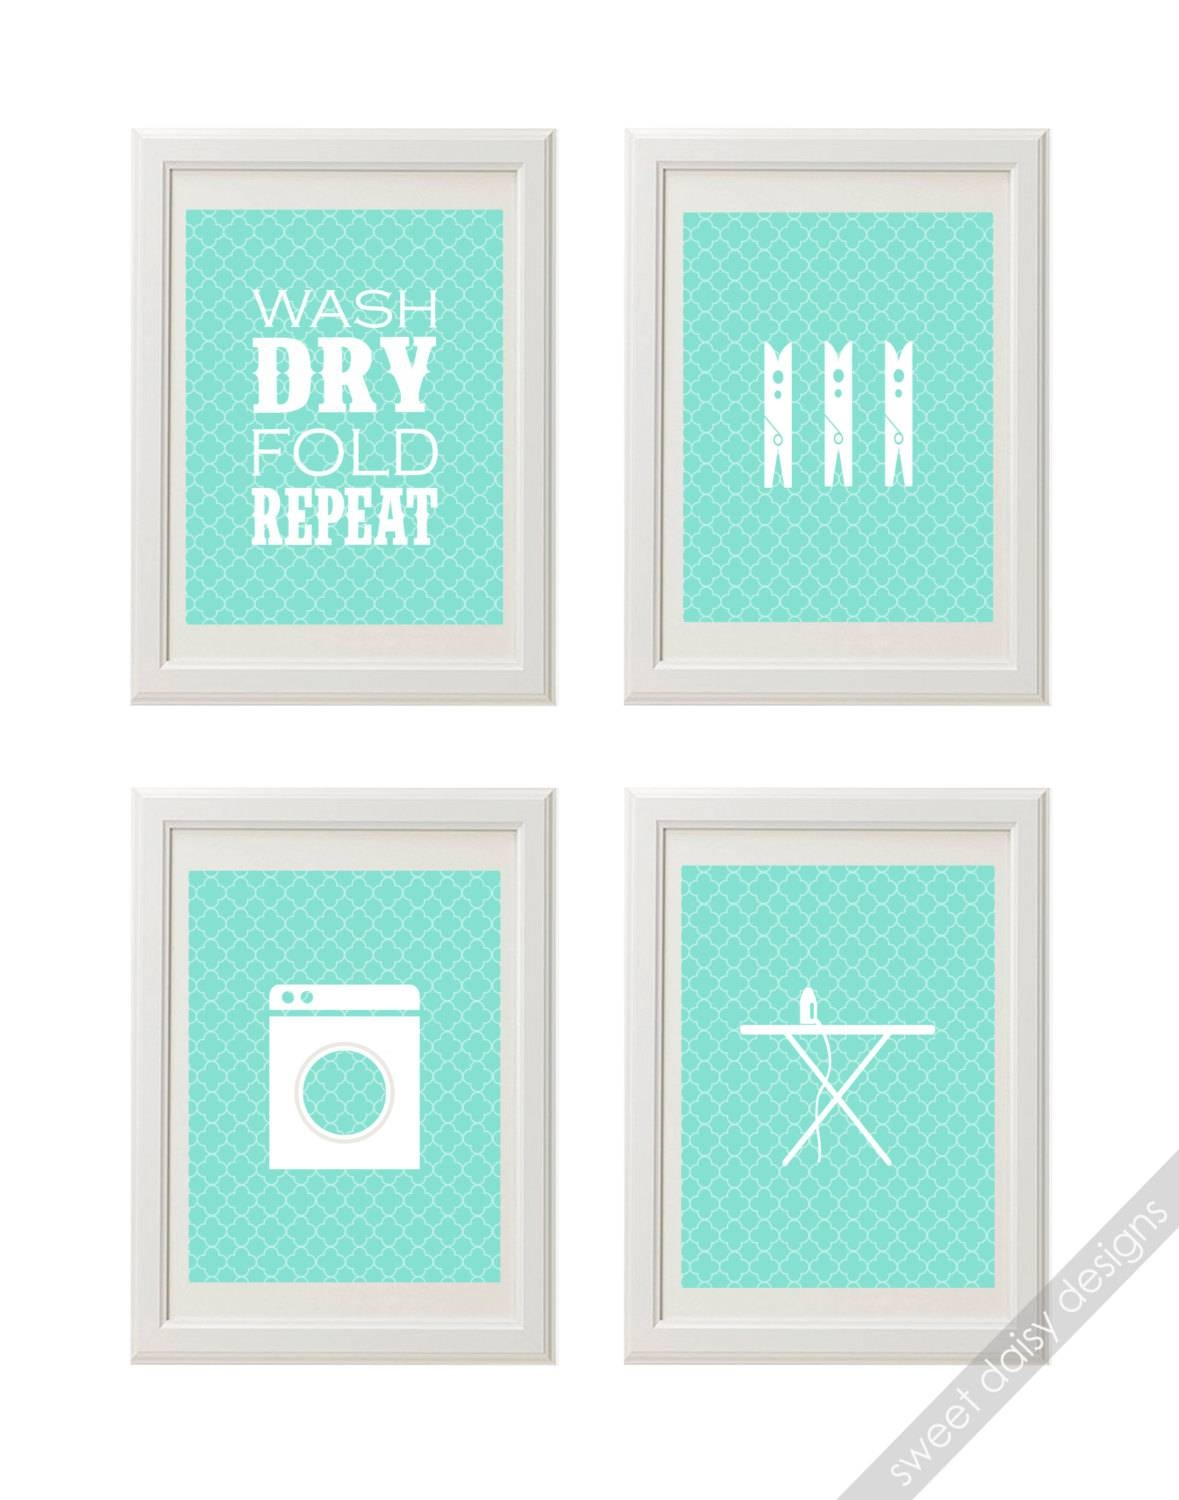 Laundry Prints Laundry Room Wall Art 4 Printable Printable Regarding Most Recently Released Laundry Room Wall Art (View 30 of 30)